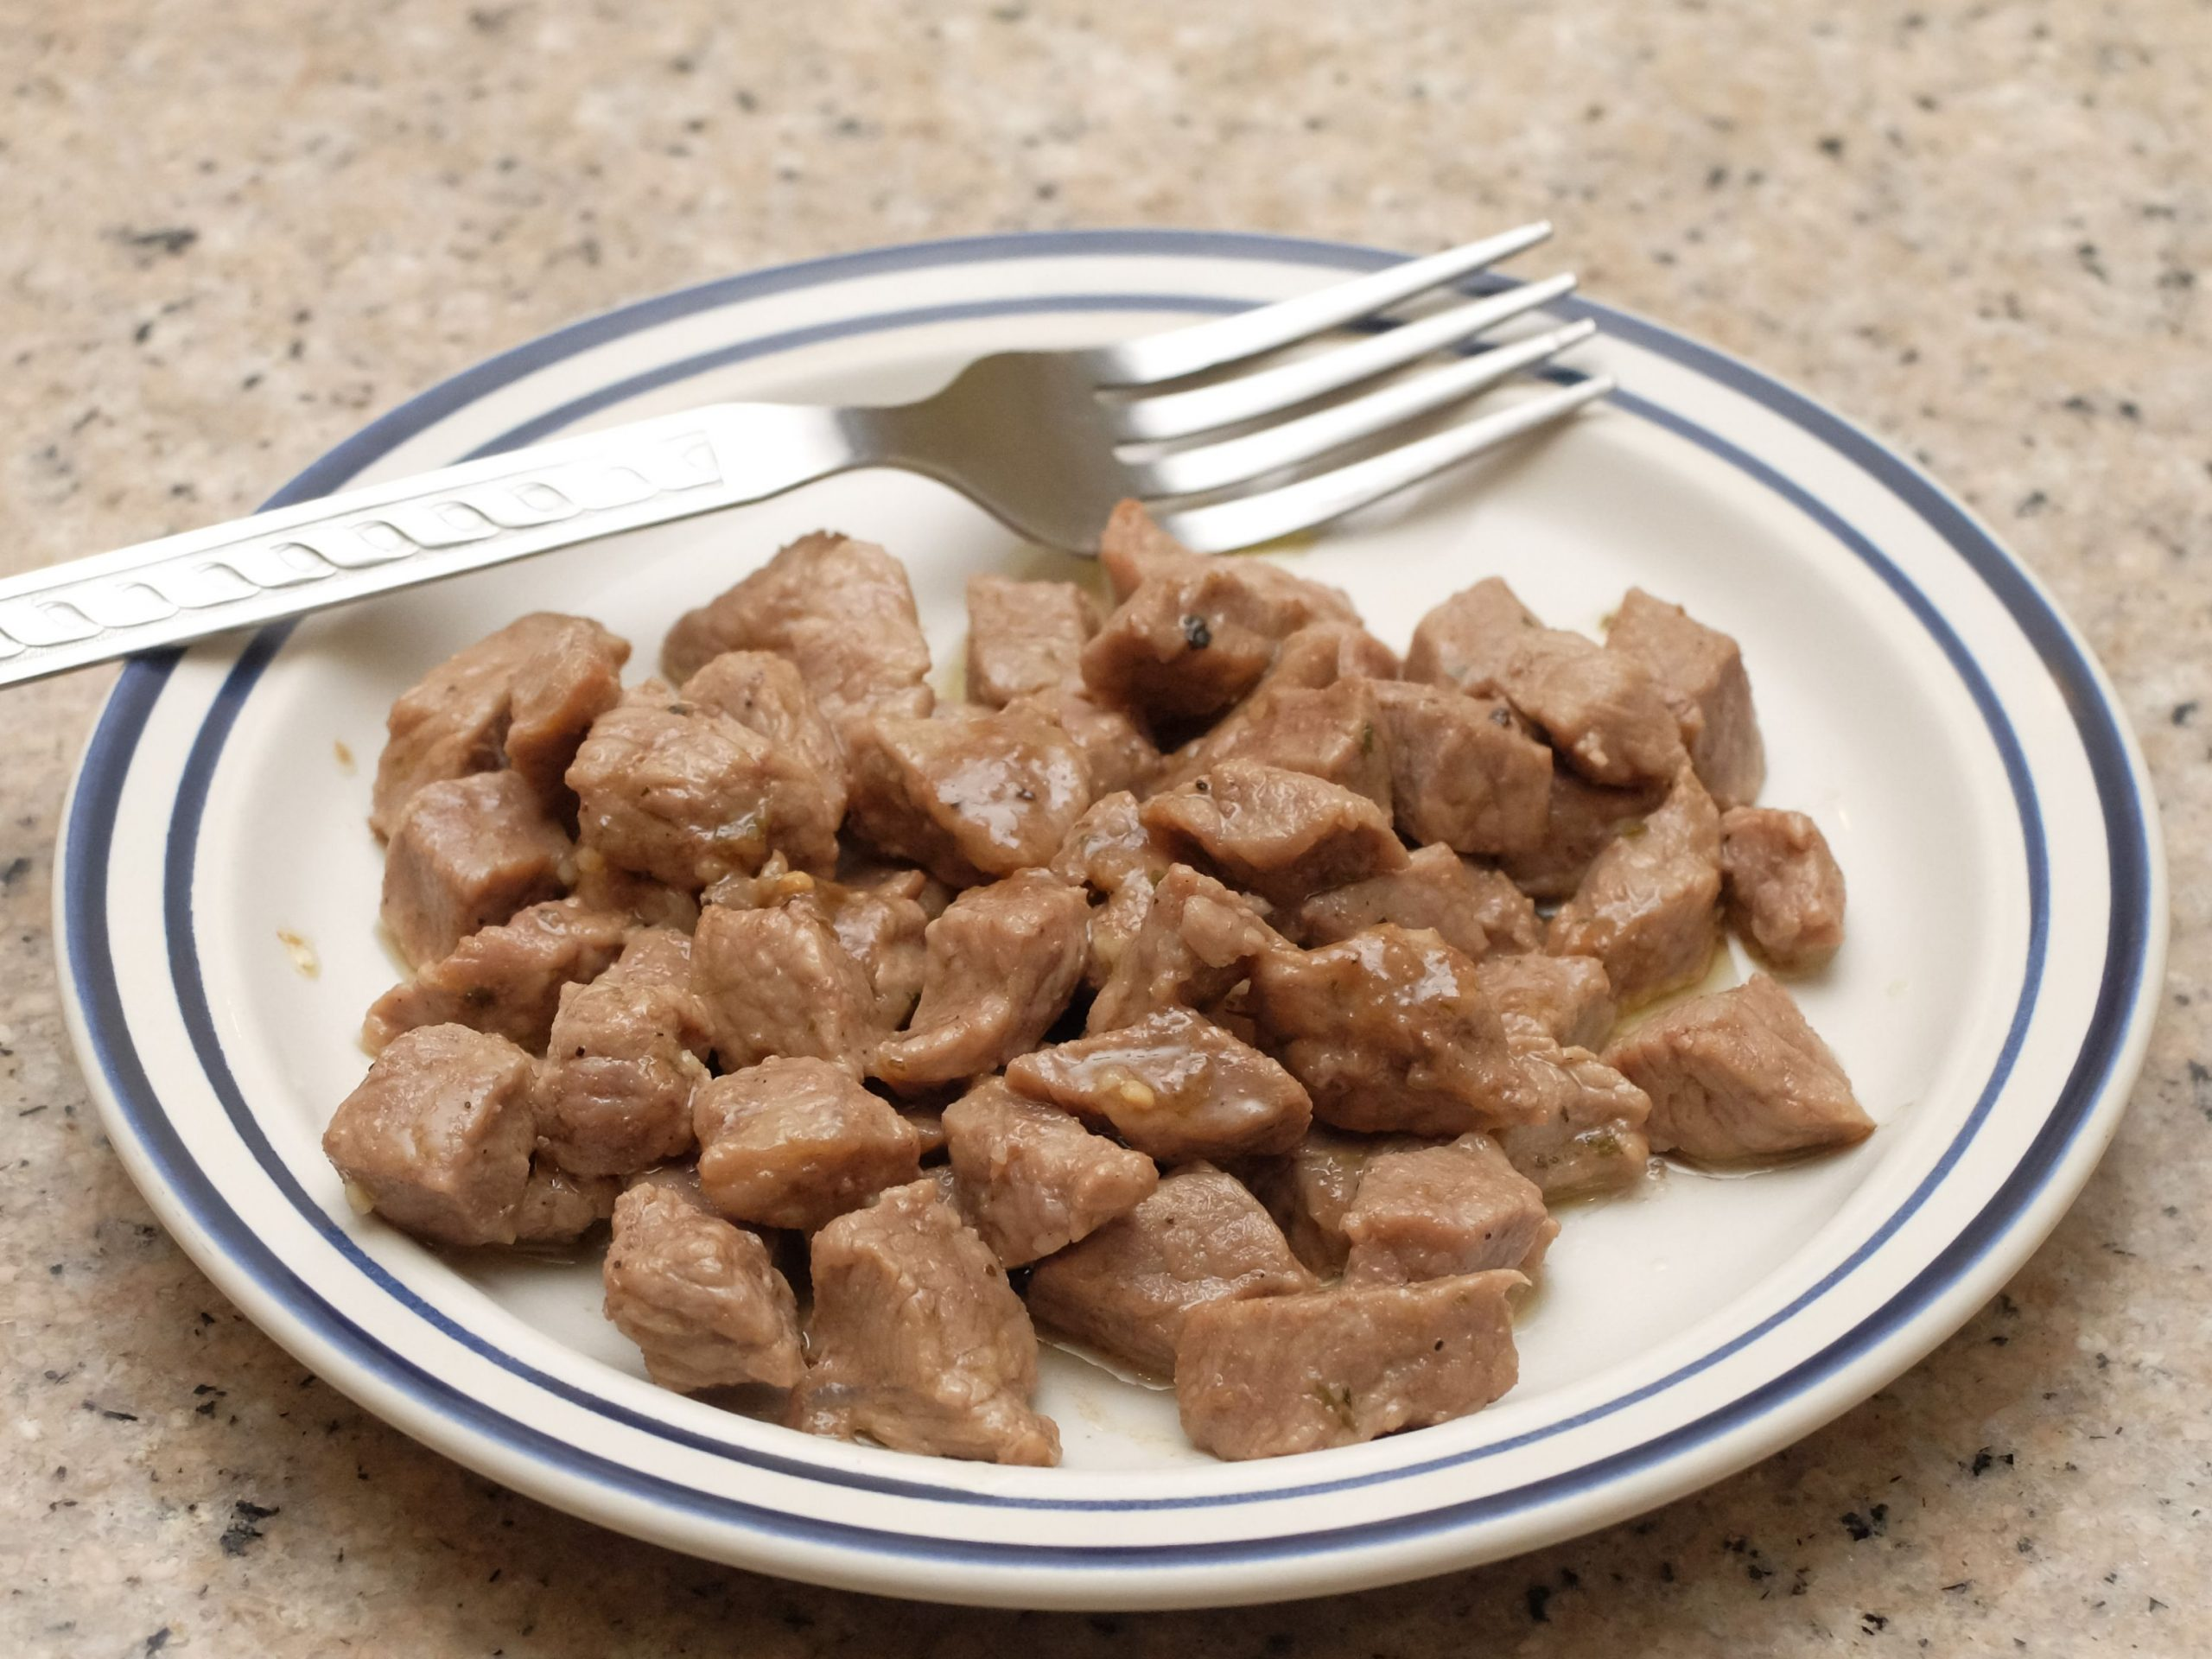 Cook Diced Beef - Recipes Diced Beef